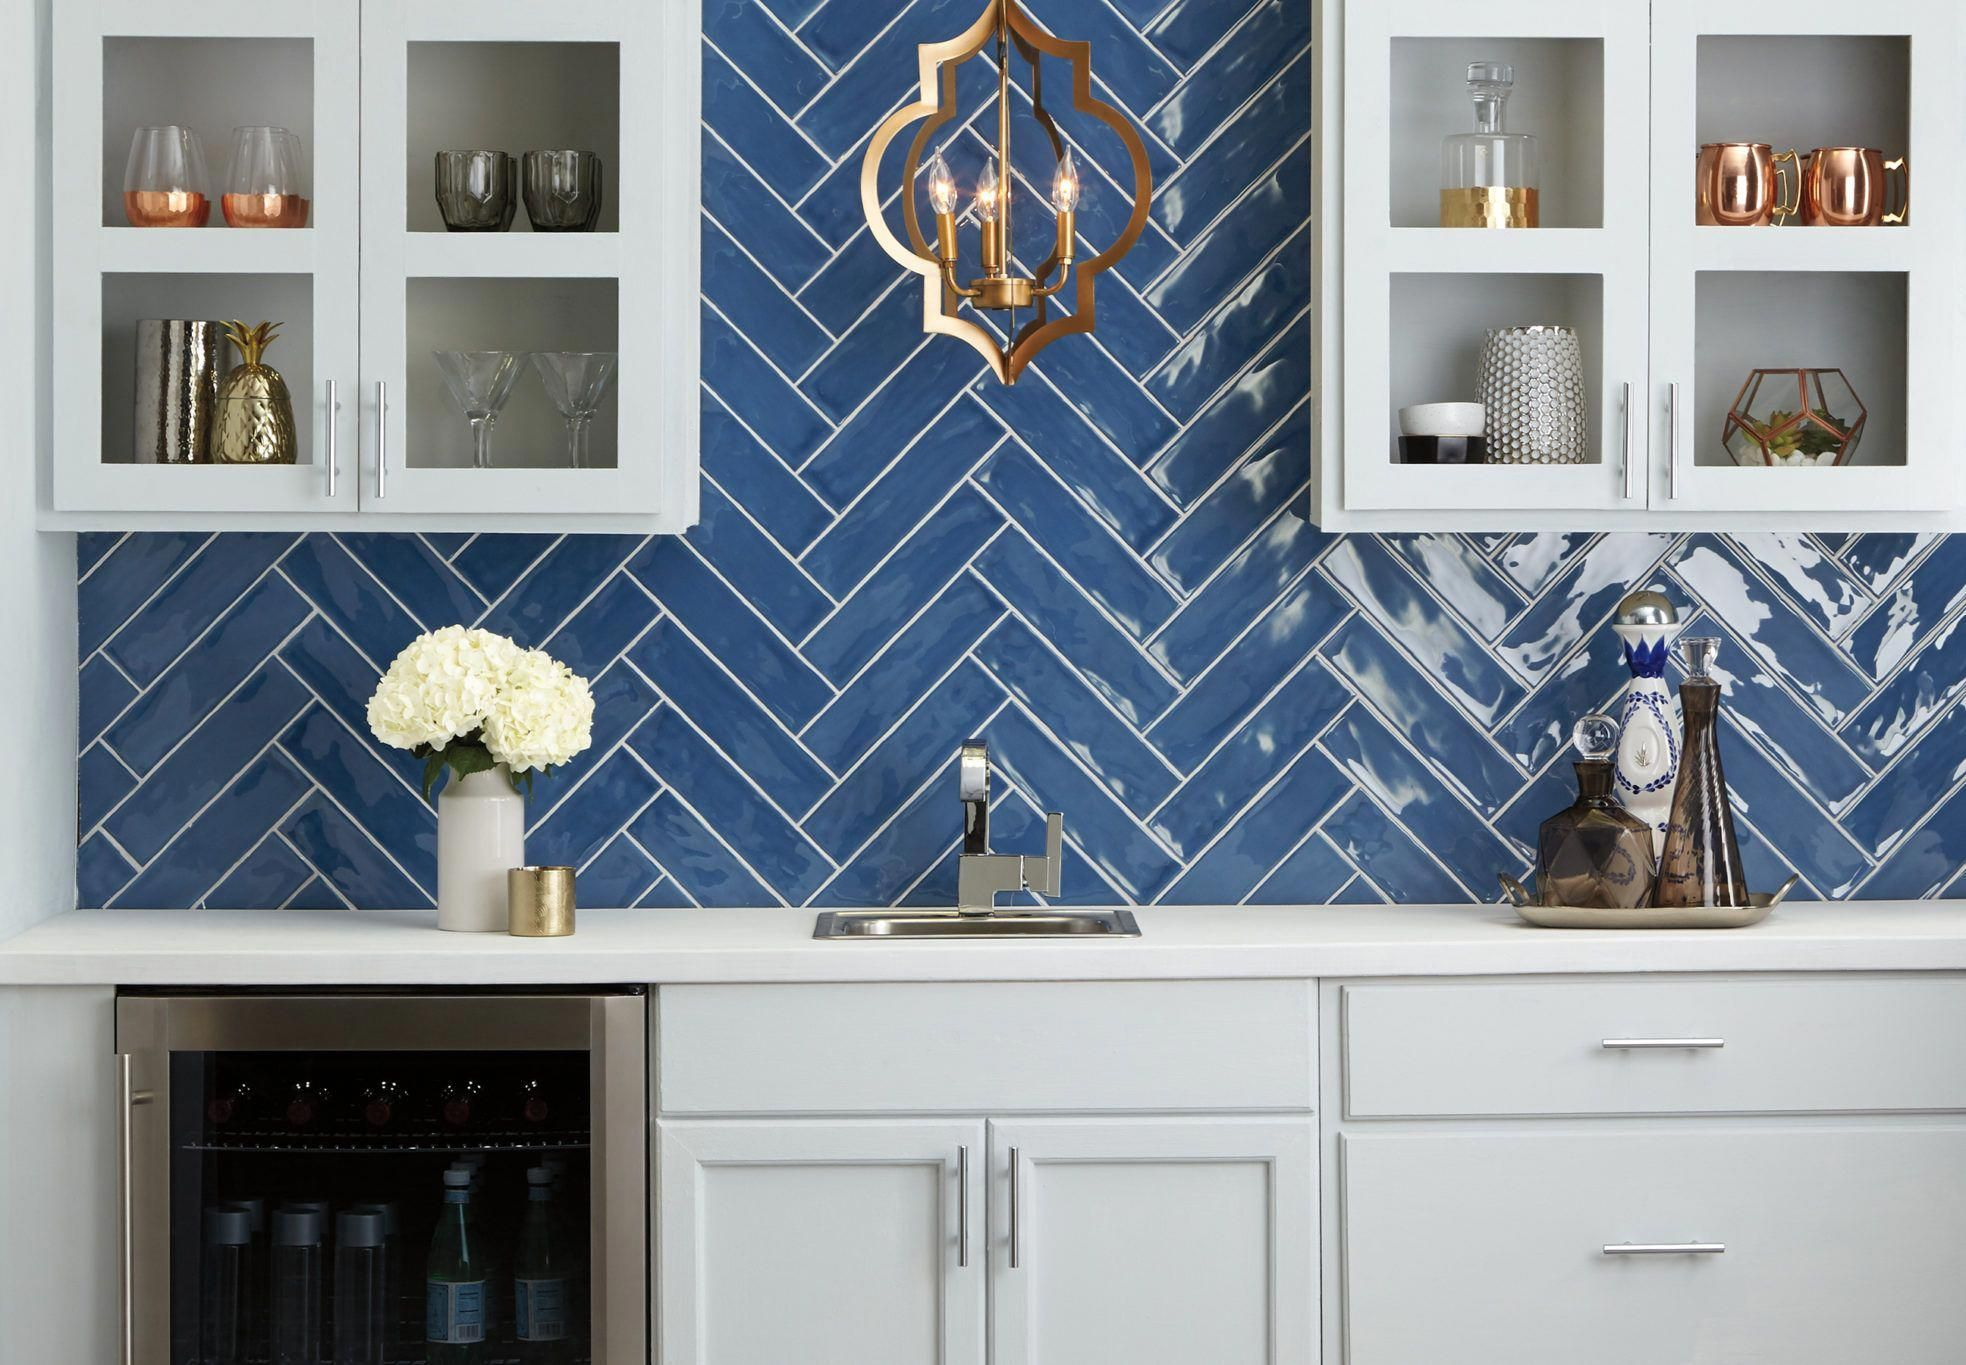 Twist Up Your Idea Of A Blue Subway Backsplash And Create A Unique Look With Thi Access In 2020 Blue Tile Backsplash Blue Backsplash Blue Tile Backsplash Kitchen